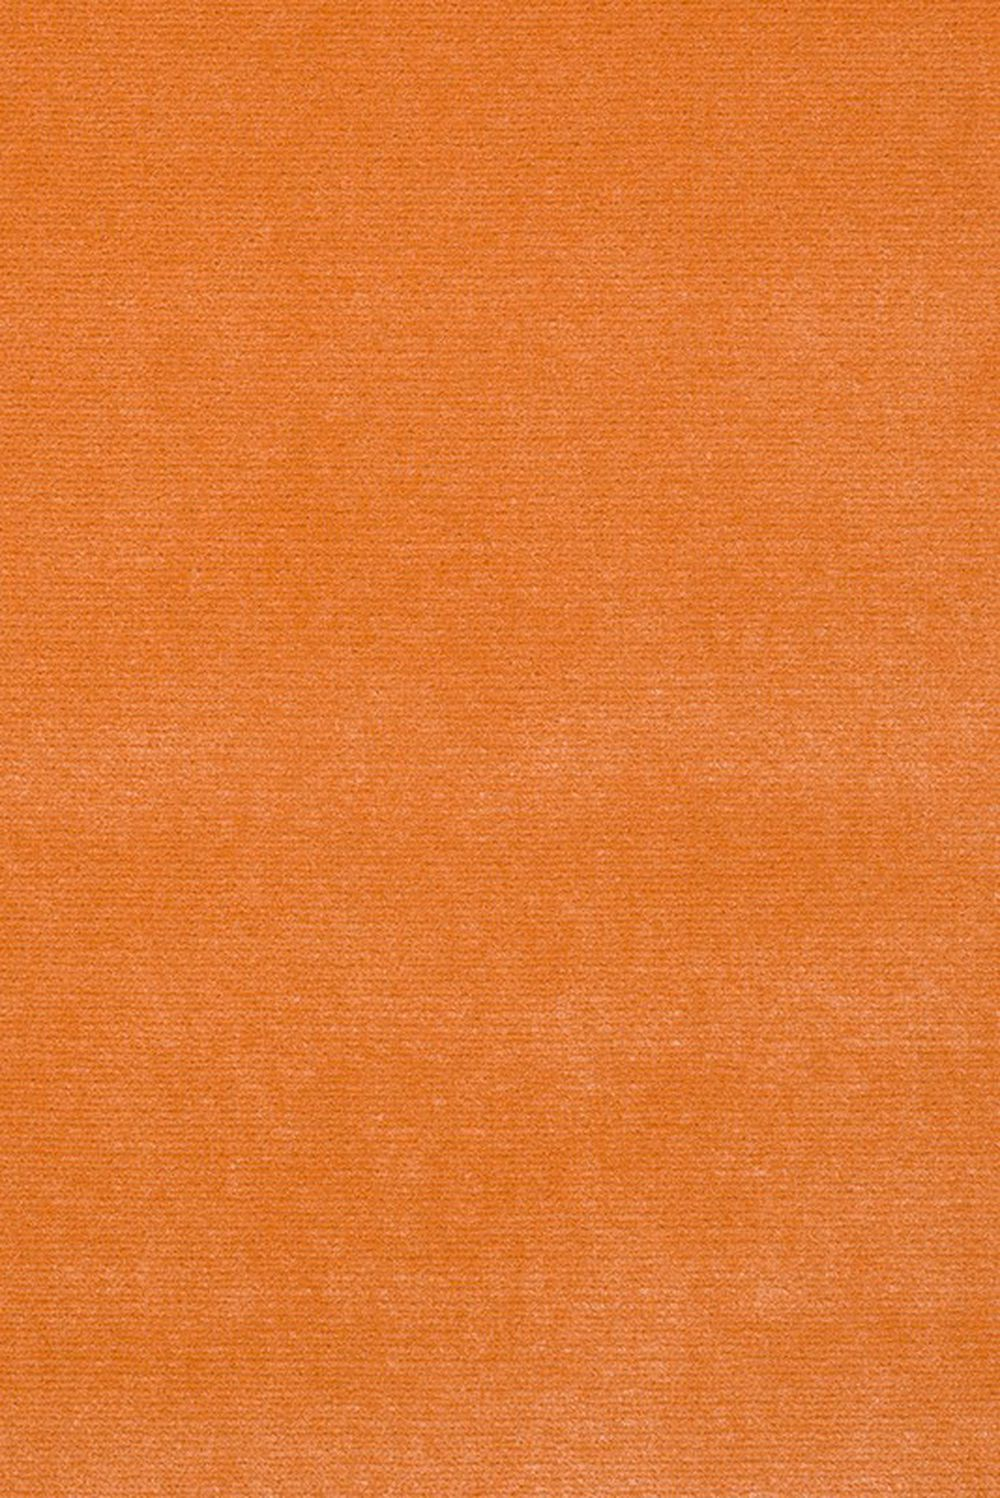 Photo of the fabric South Beach Peach swatch by Mokum. Use for Upholstery Heavy Duty, Accessory. Style of Plain, Velvet